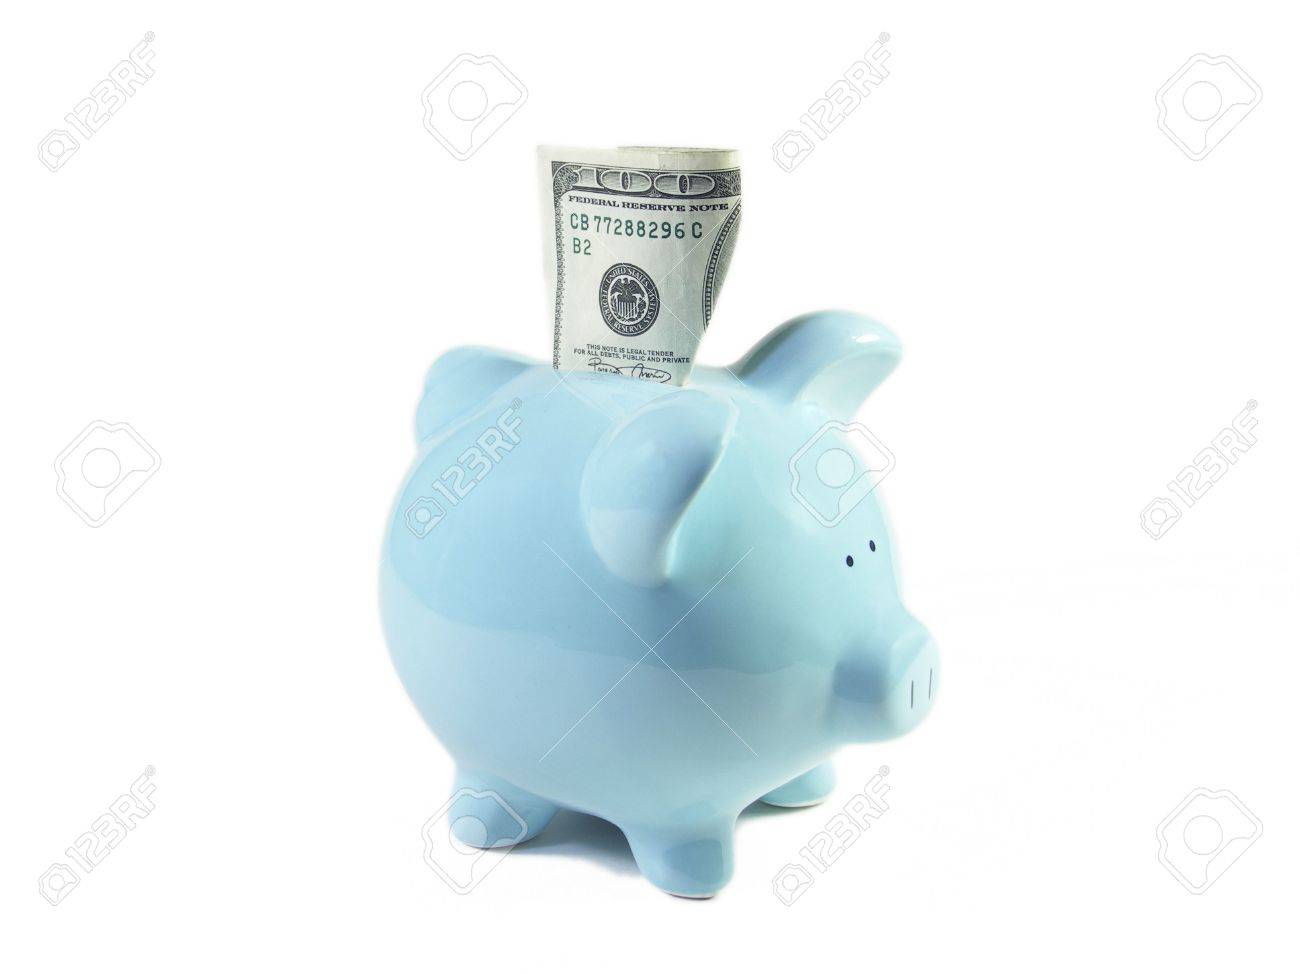 U.S. one hundred dollar bill stuck partially into a blue ceramic piggy bank. Isolated on white. Shallow depth of field. Focus on top of bill. Stock Photo - 263436